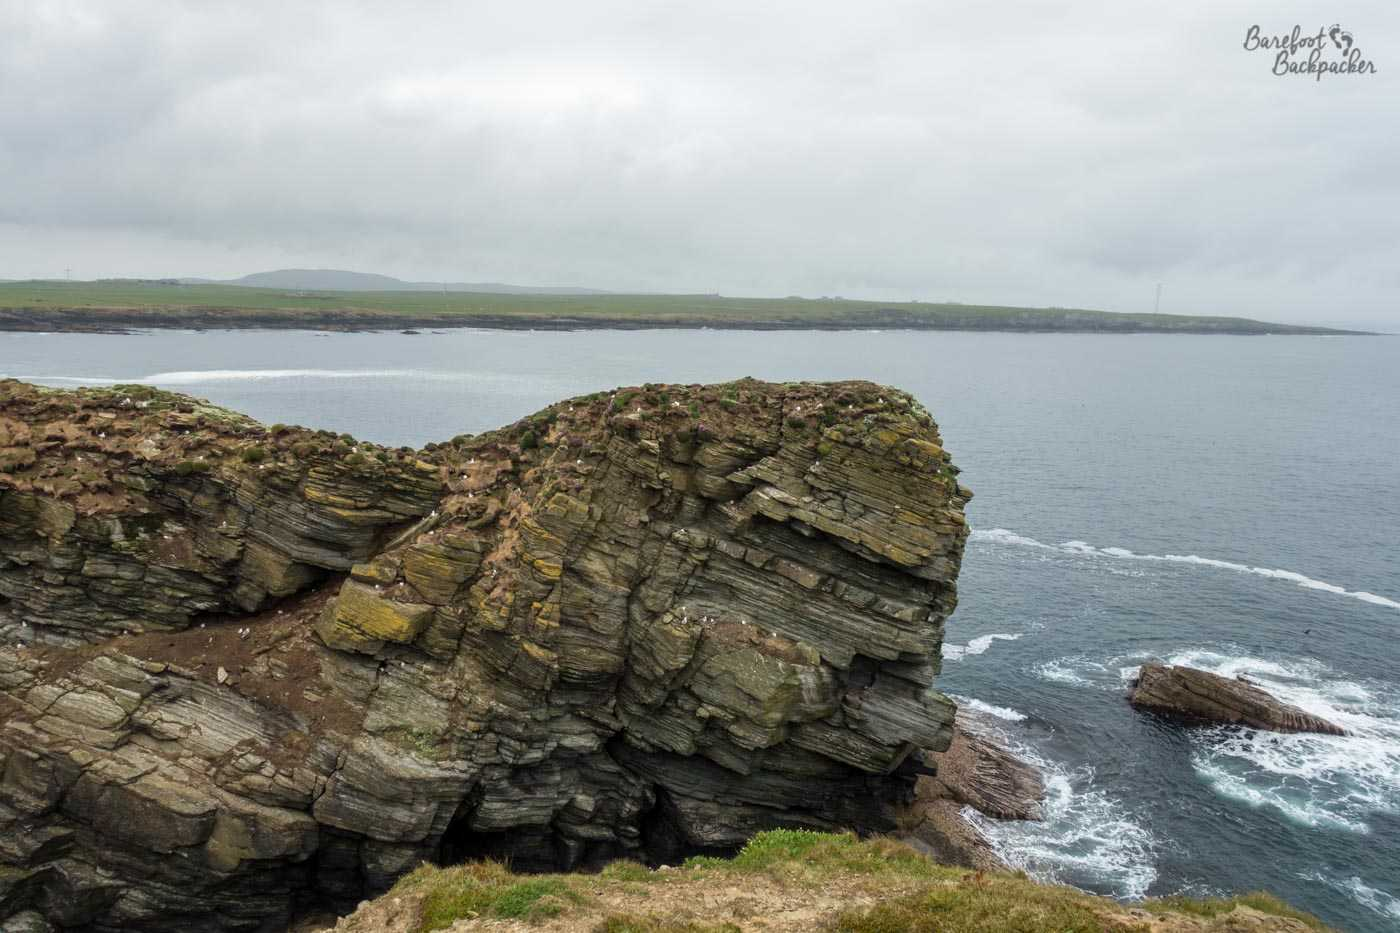 Part of the Castle O'Burrian rock stack. It's a long, tall, rock with jagged edges and 'shelving', all covered in birds. Below, the swell of the water is visible as it crashes over some low-lying rocks. The rest of Westray is visible in the background – the shot is looking out over a bay.